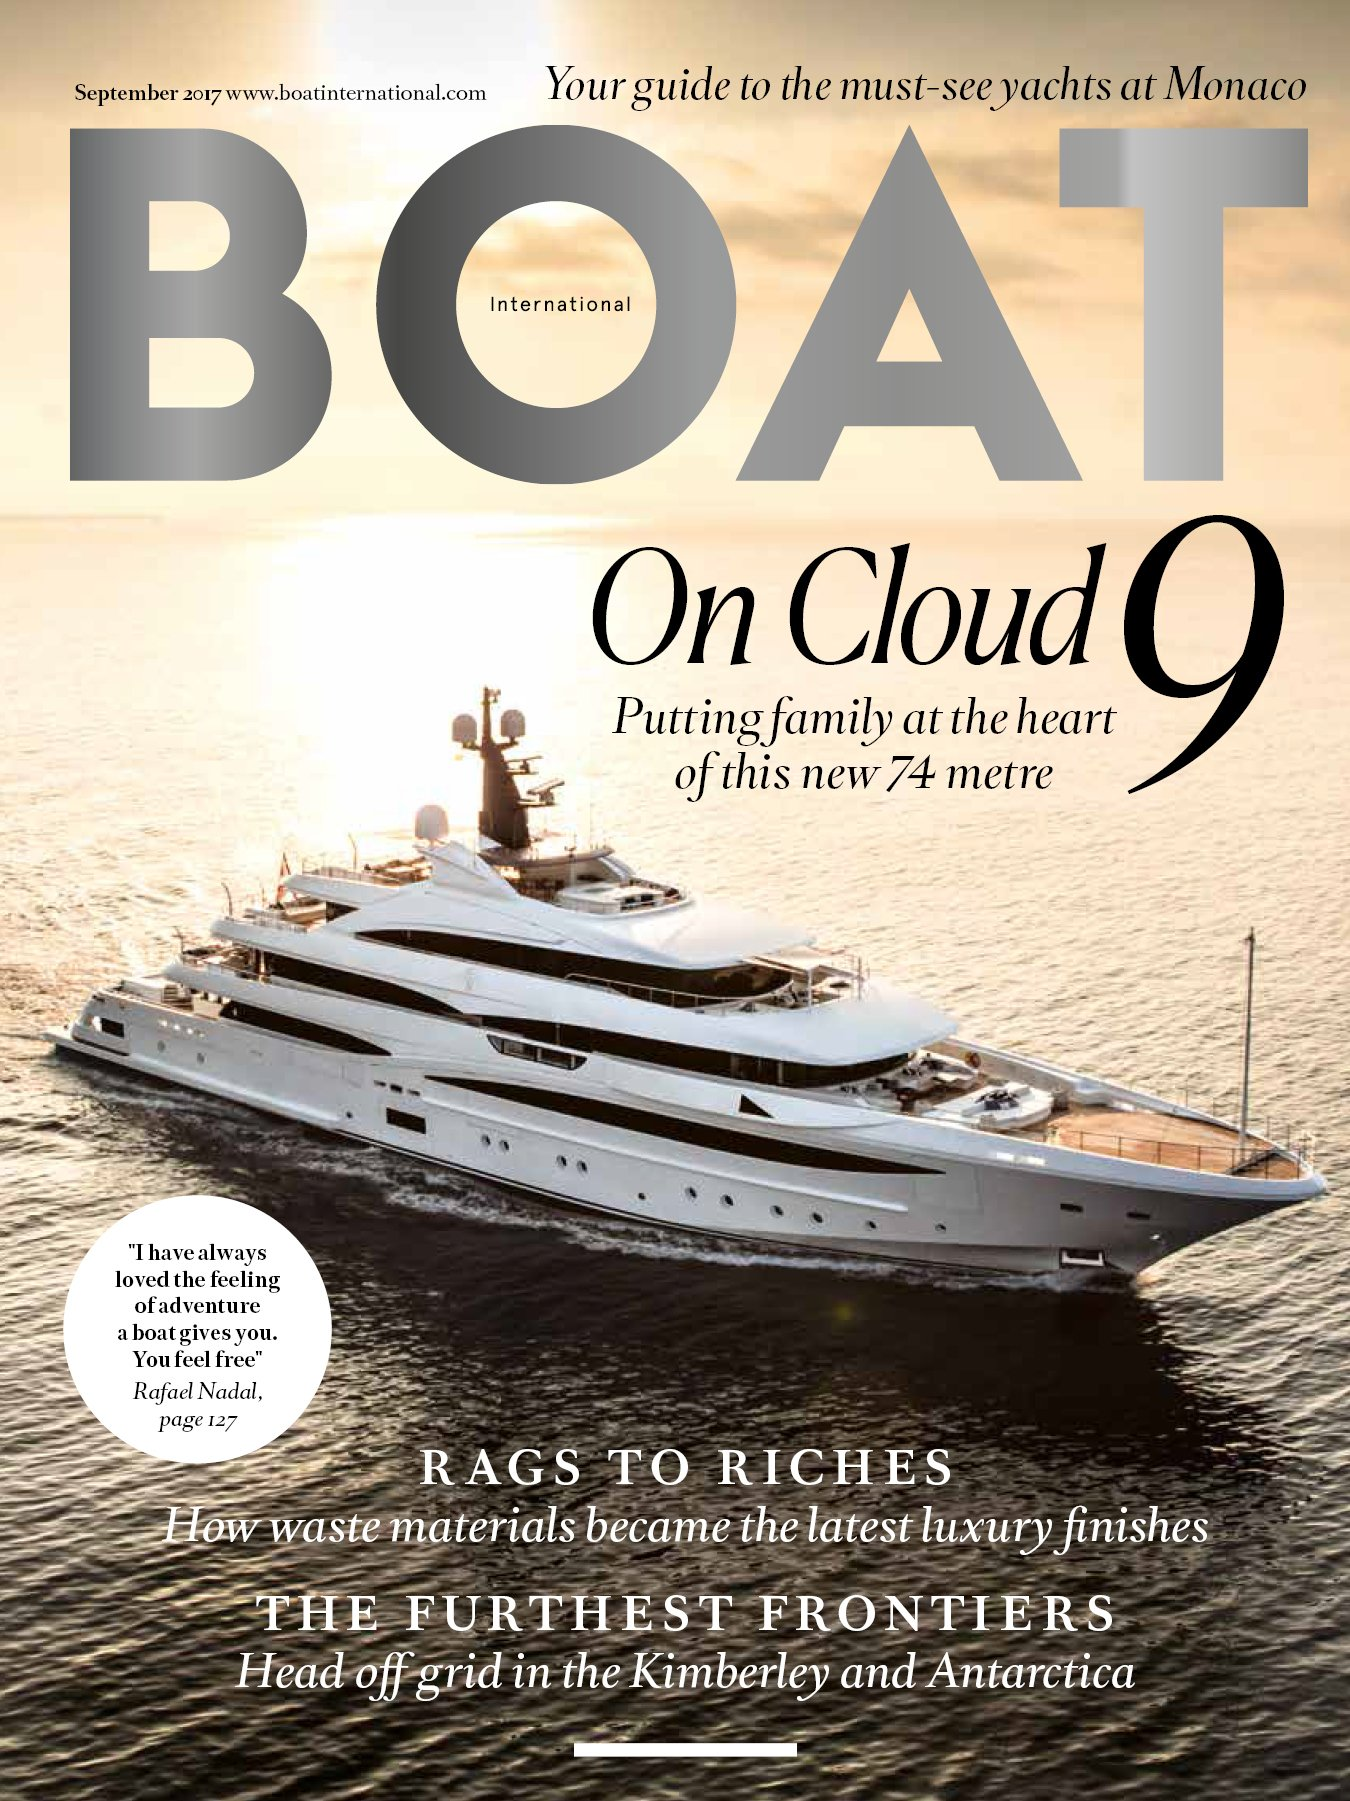 Boat International Sept 2017 Front Cover.jpg